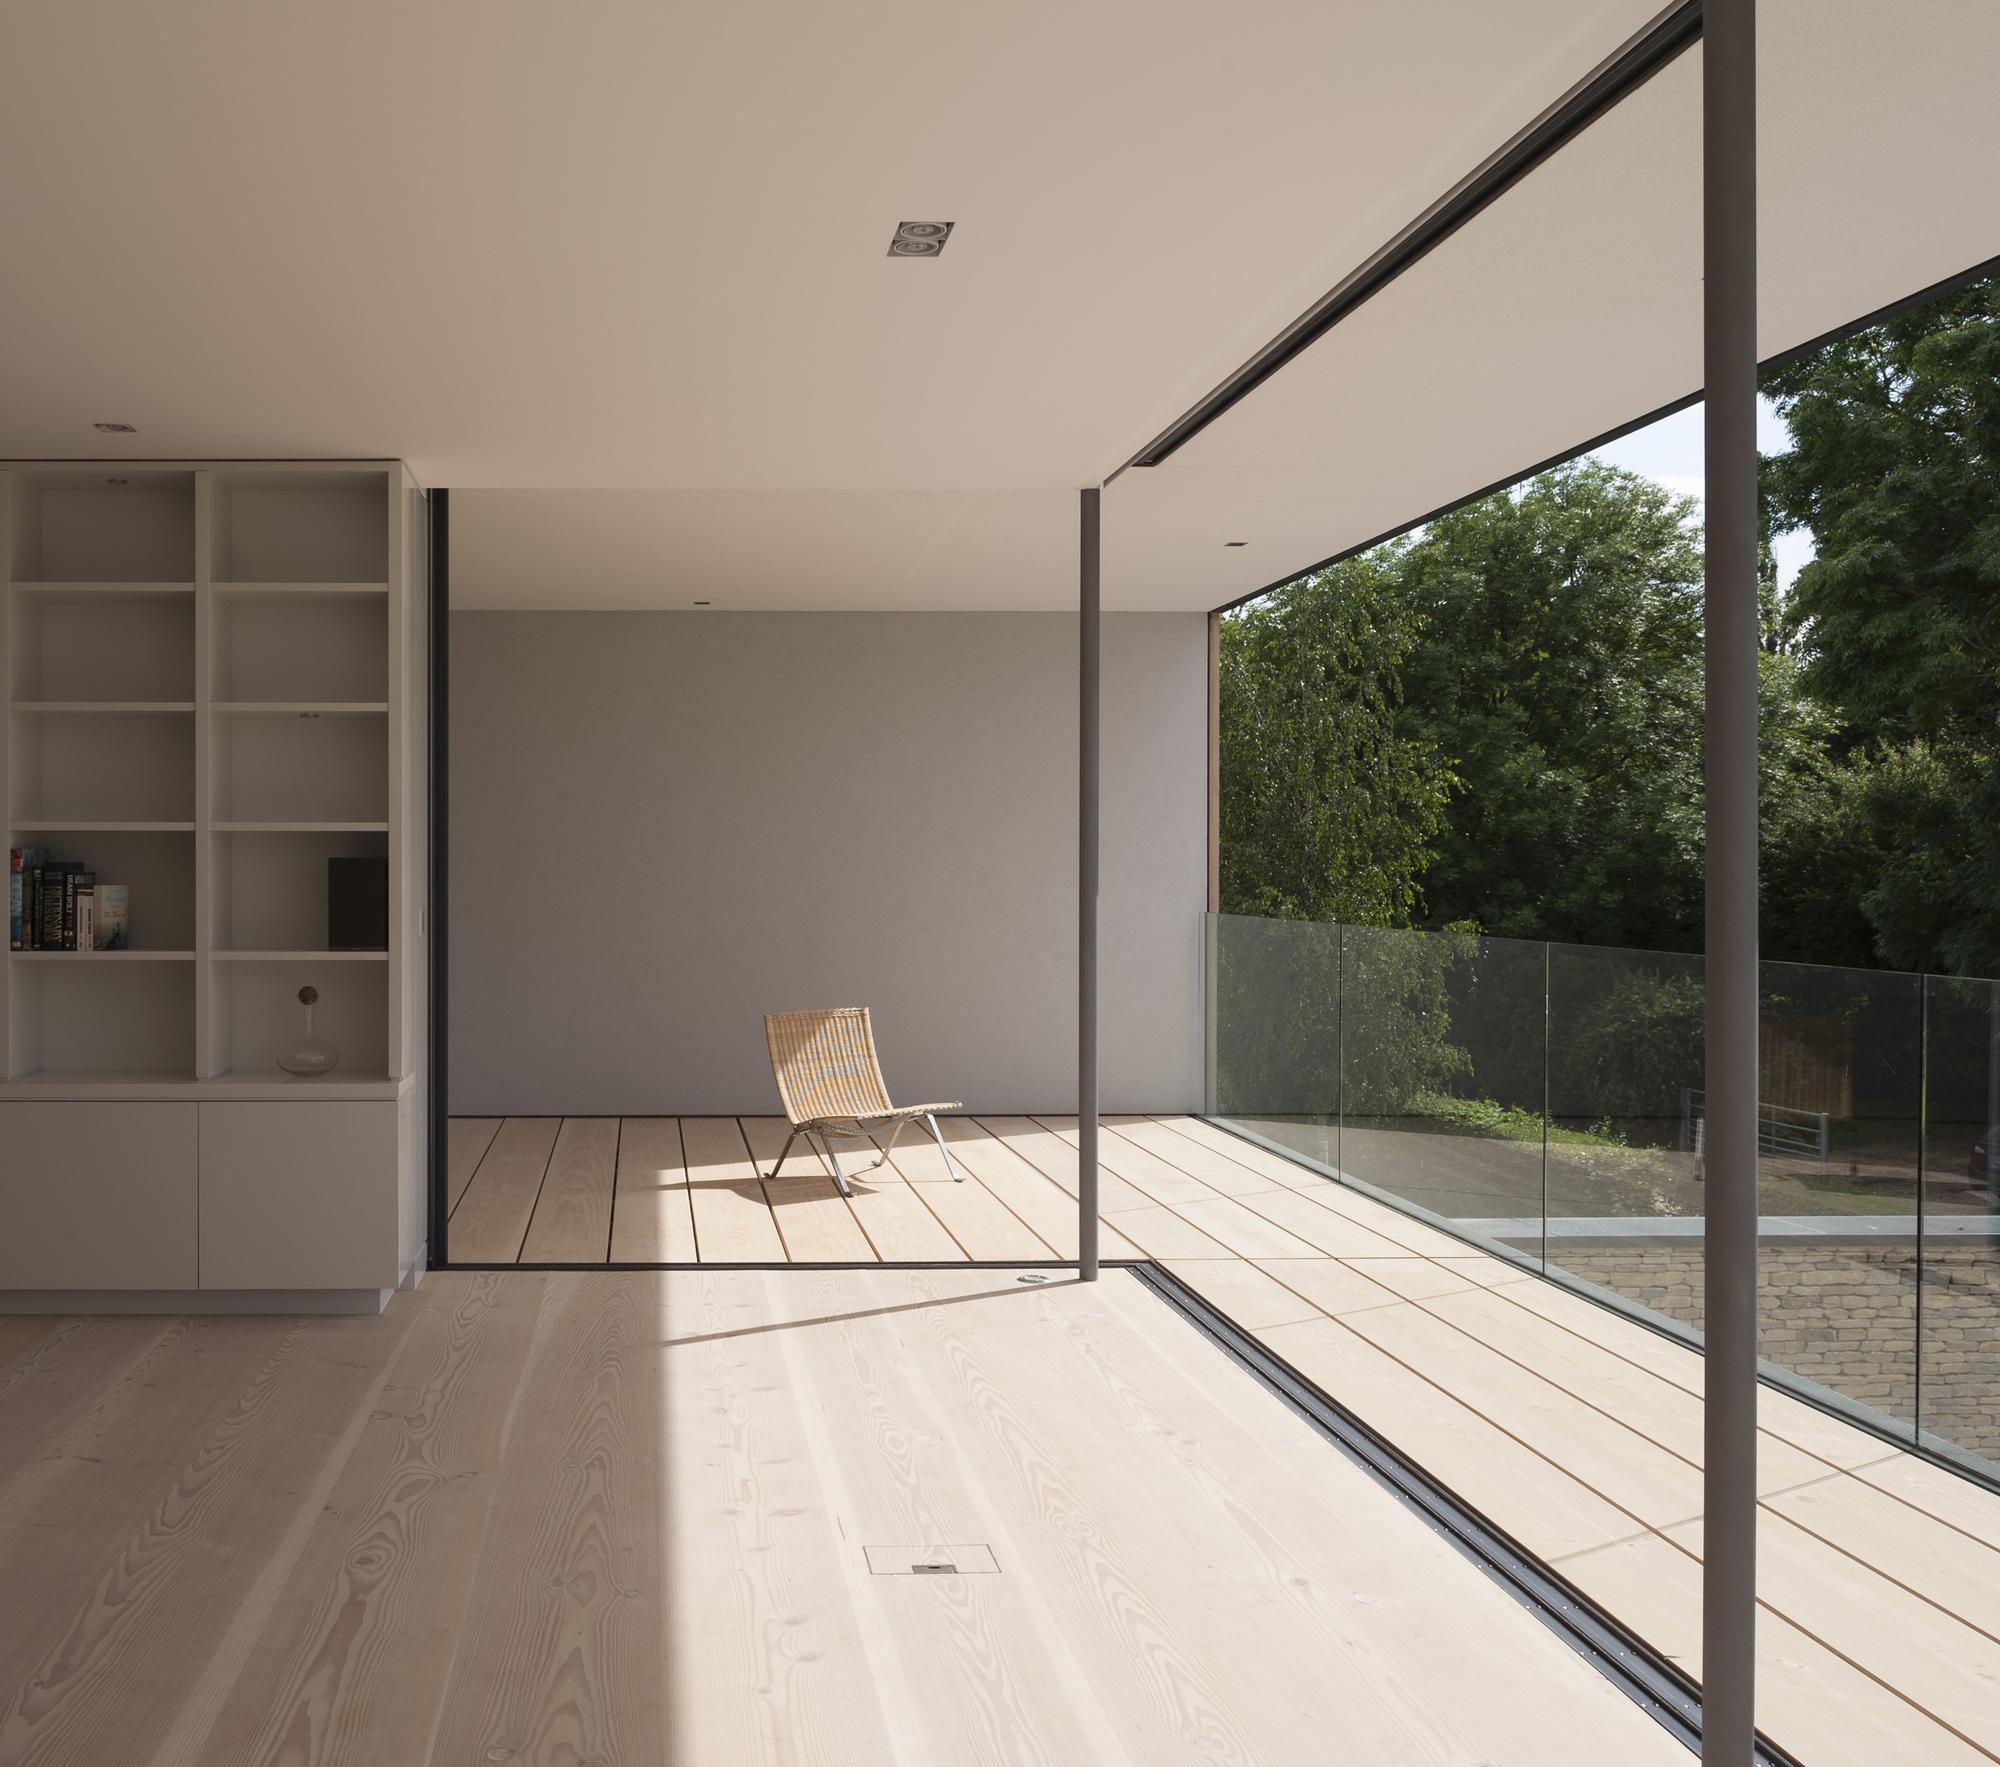 Gallery - Hurst House / John Pardey Architects + Ström Architects - 6